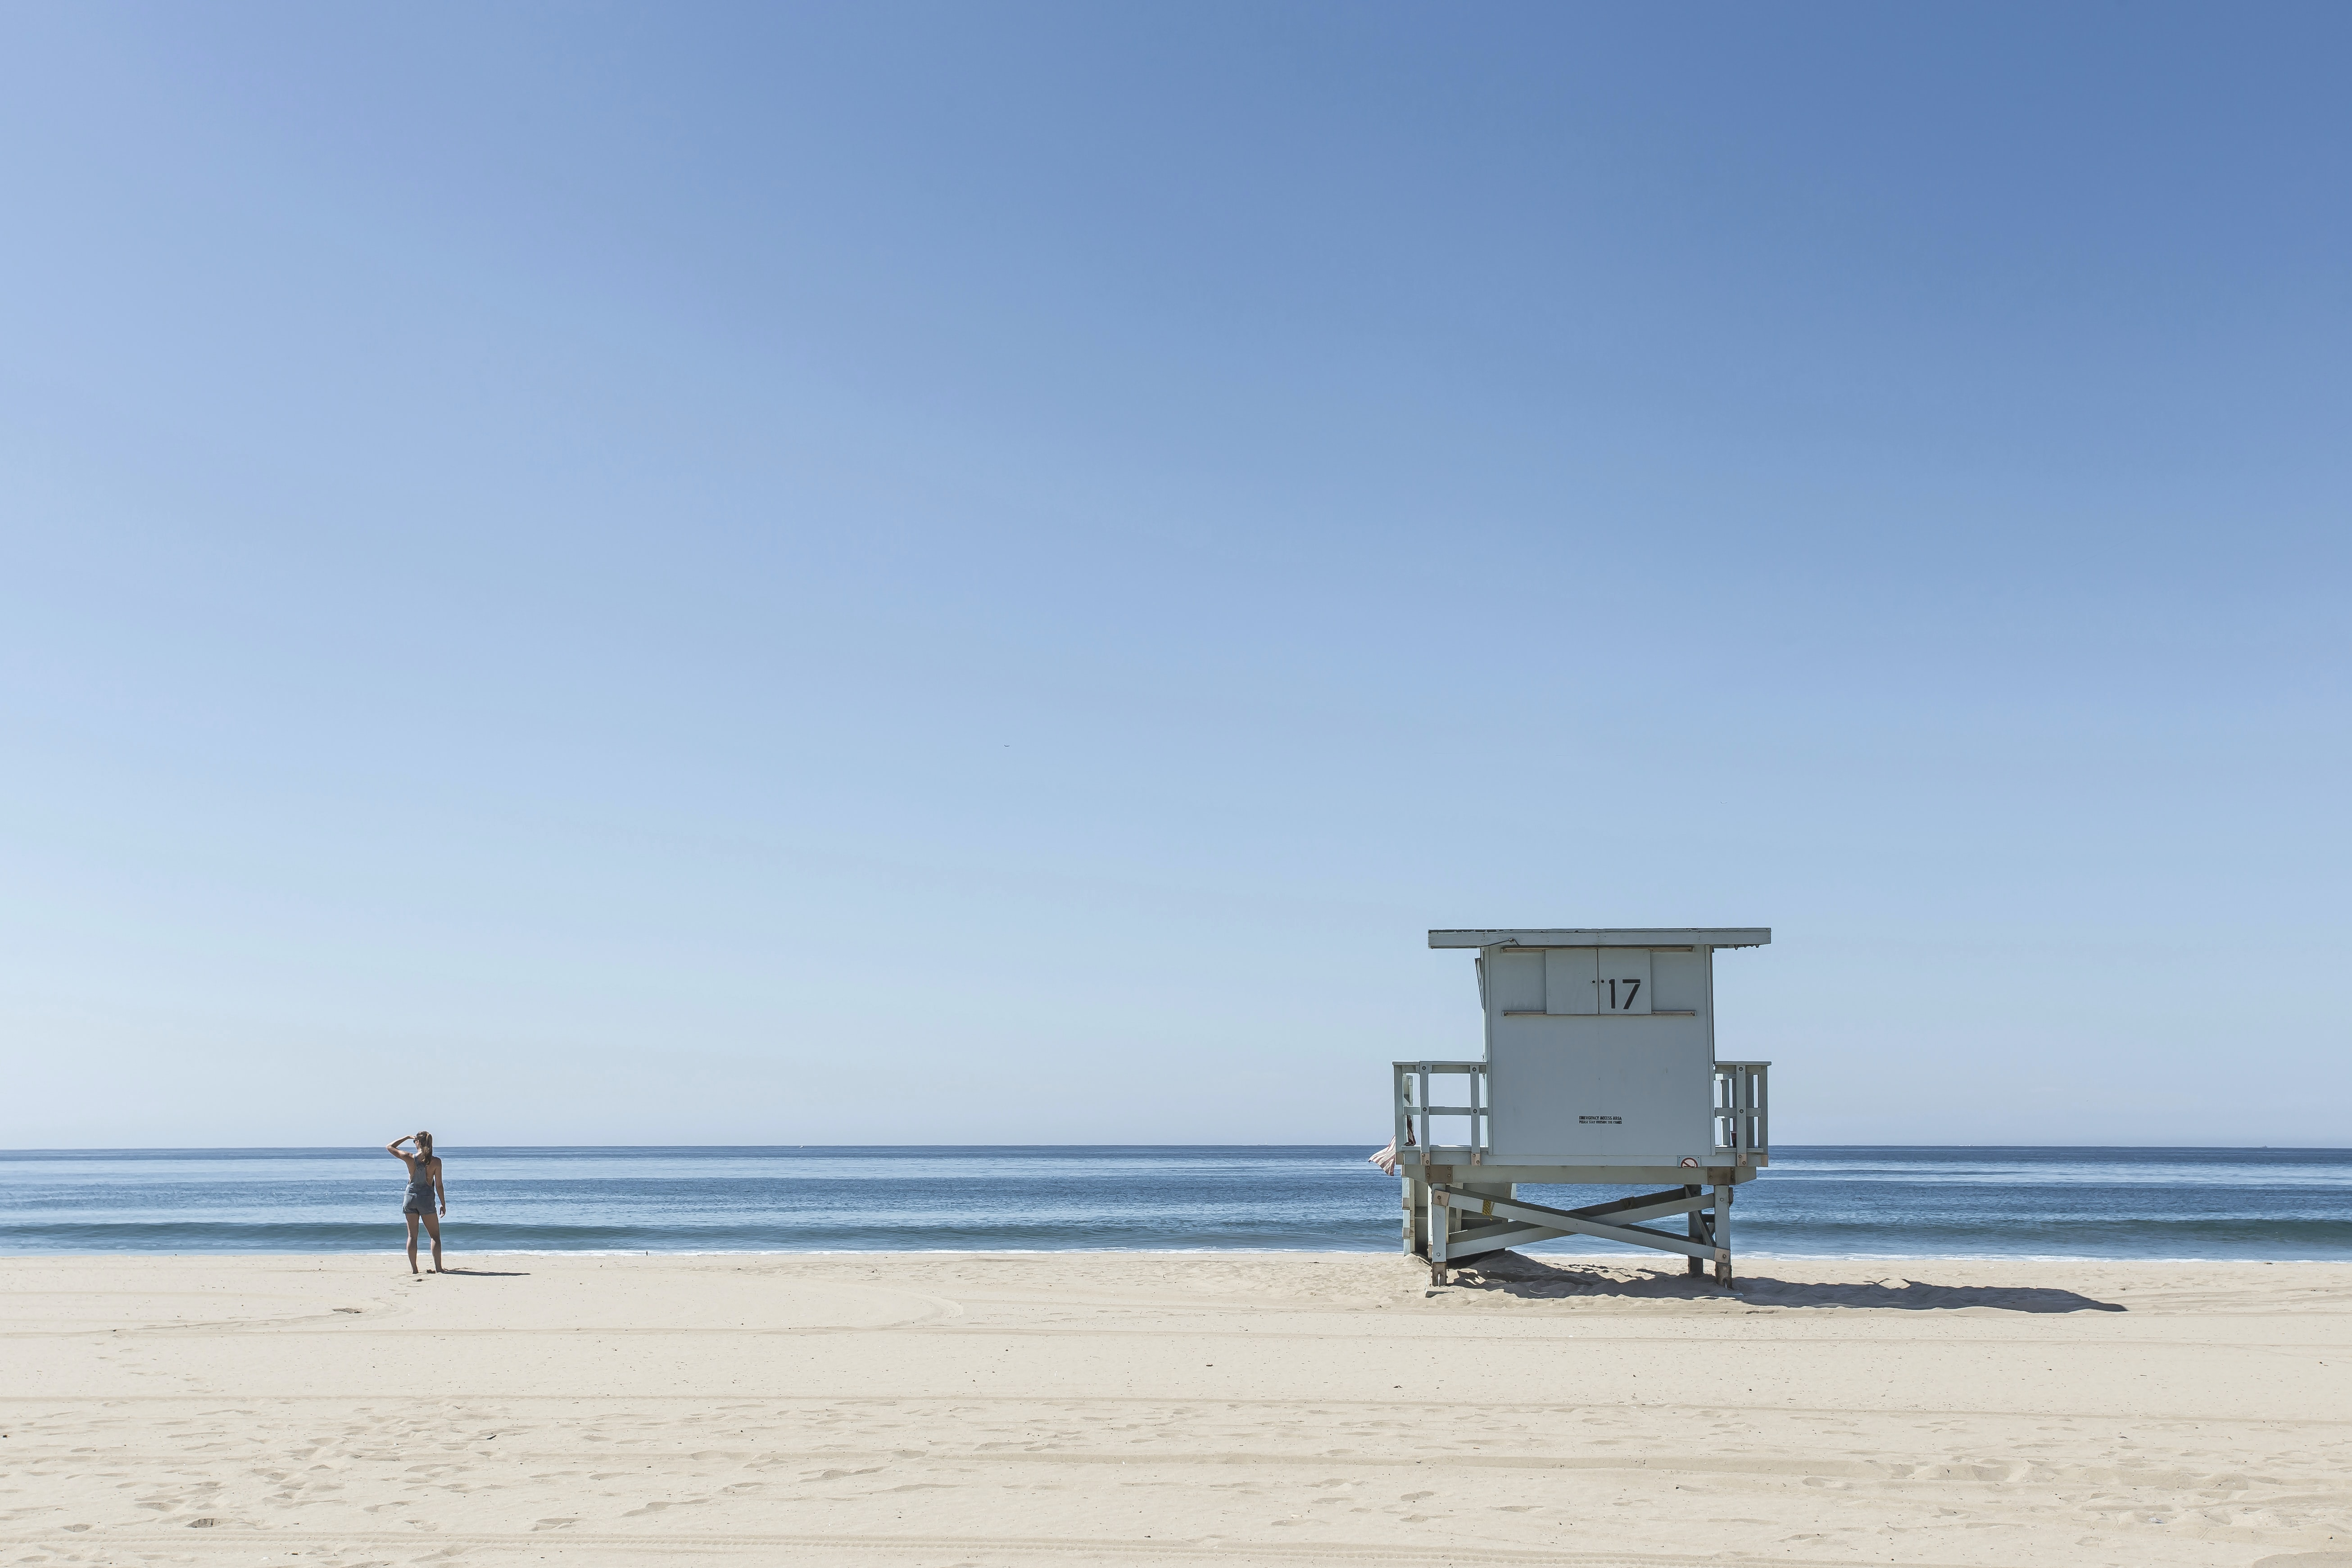 person standing near lifeguard house